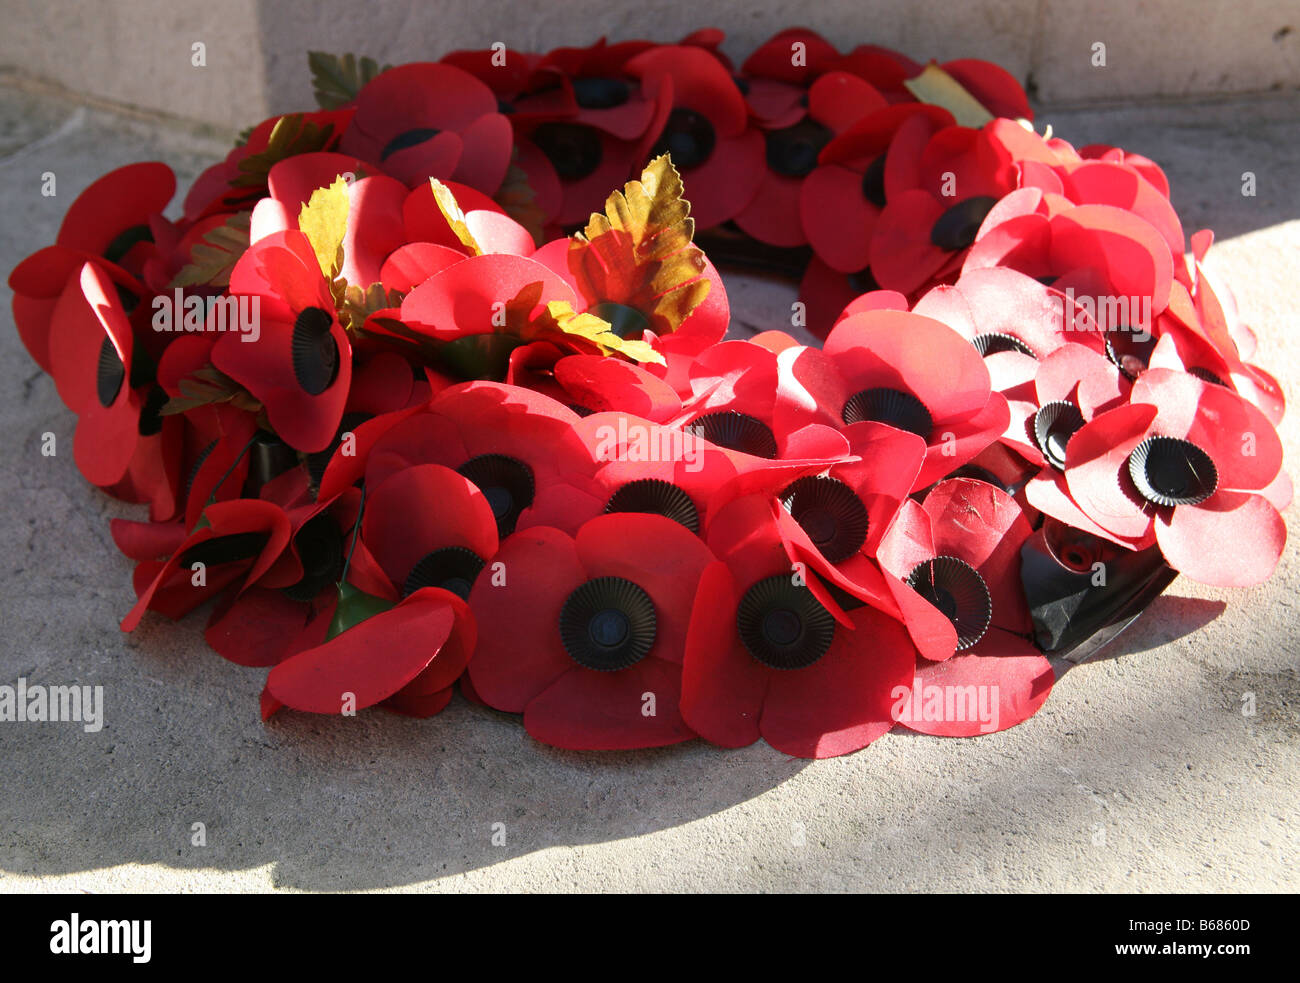 Wreath of poppies on London war memorial - Stock Image